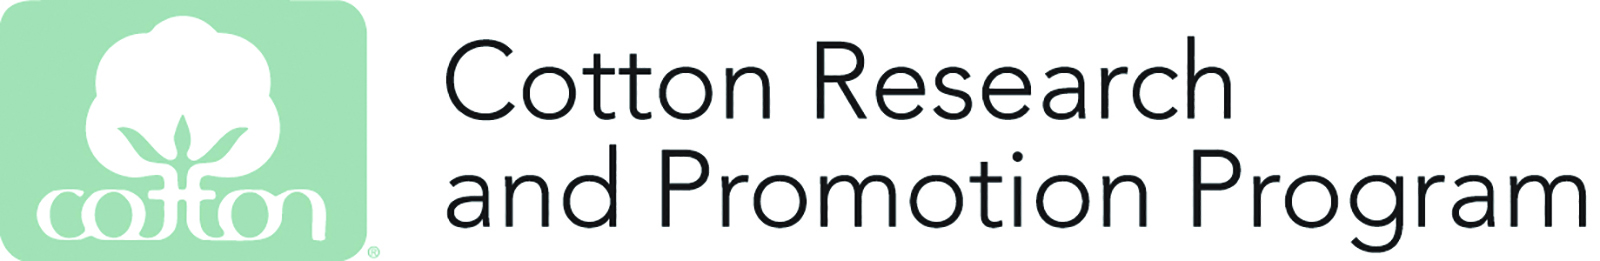 Cotton Research and Promotion Program Logo